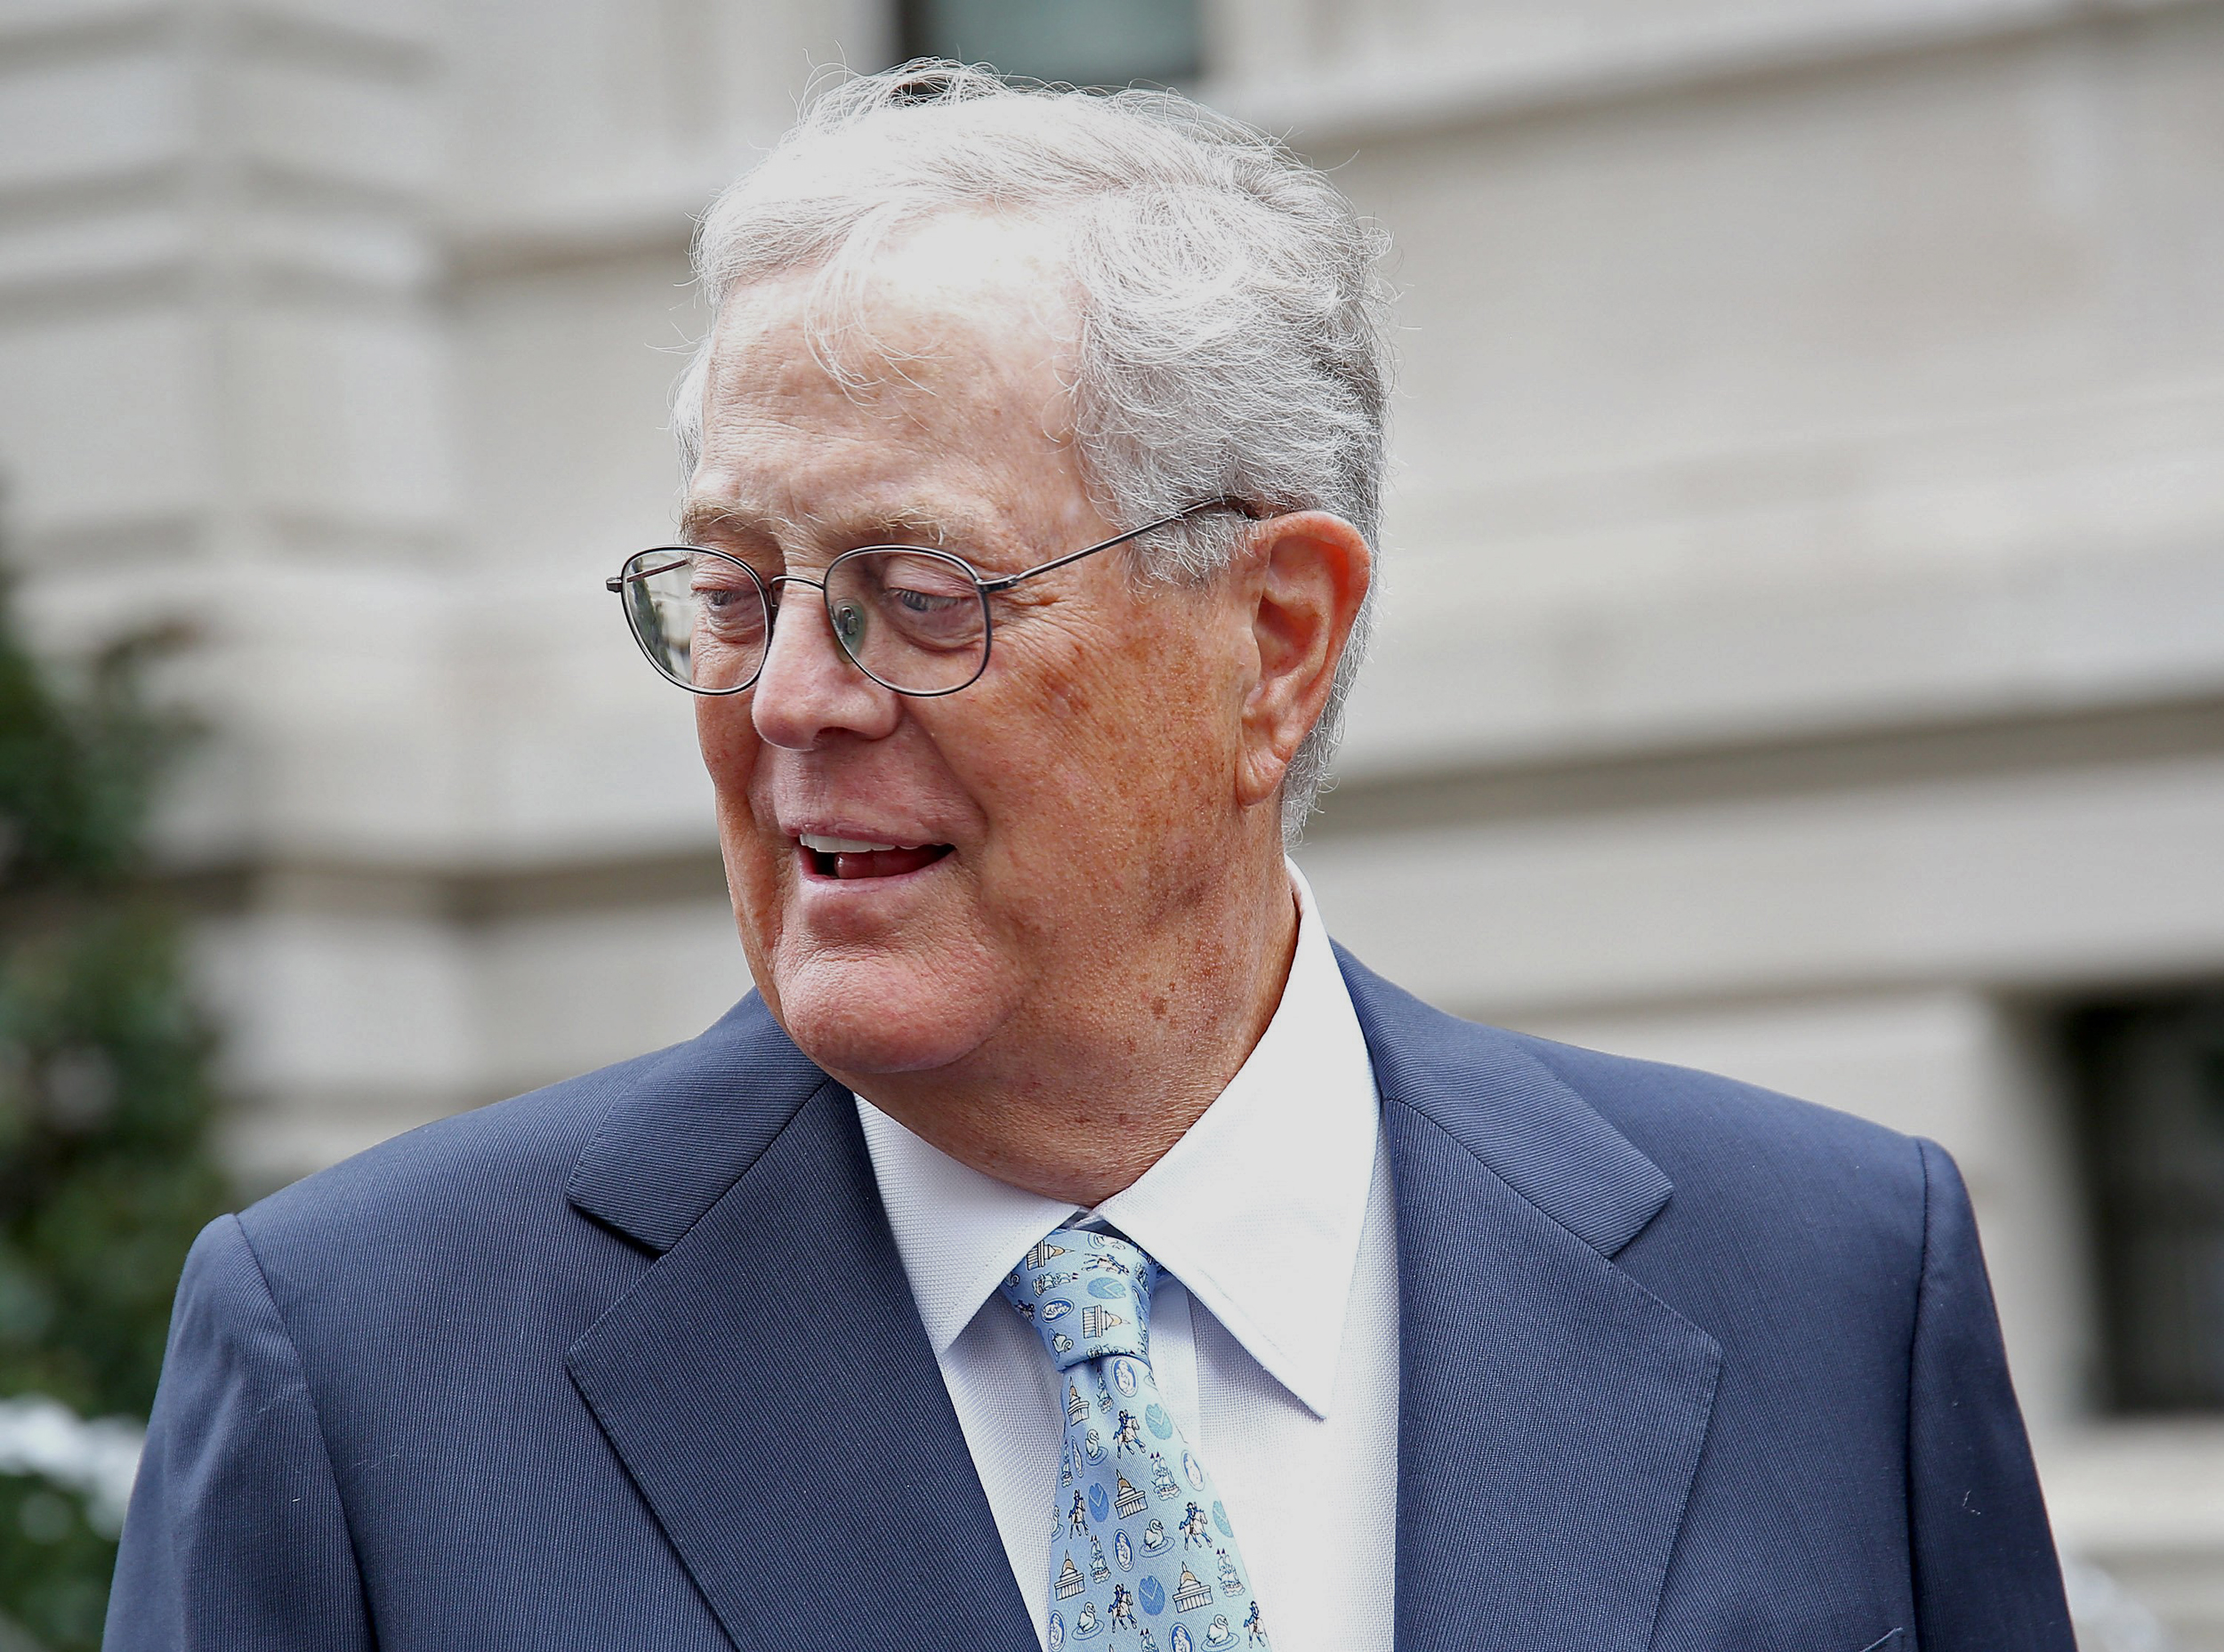 Charles David Koch We Know Who You Are >> David Koch Billionaire Conservative Activist And Philanthropist